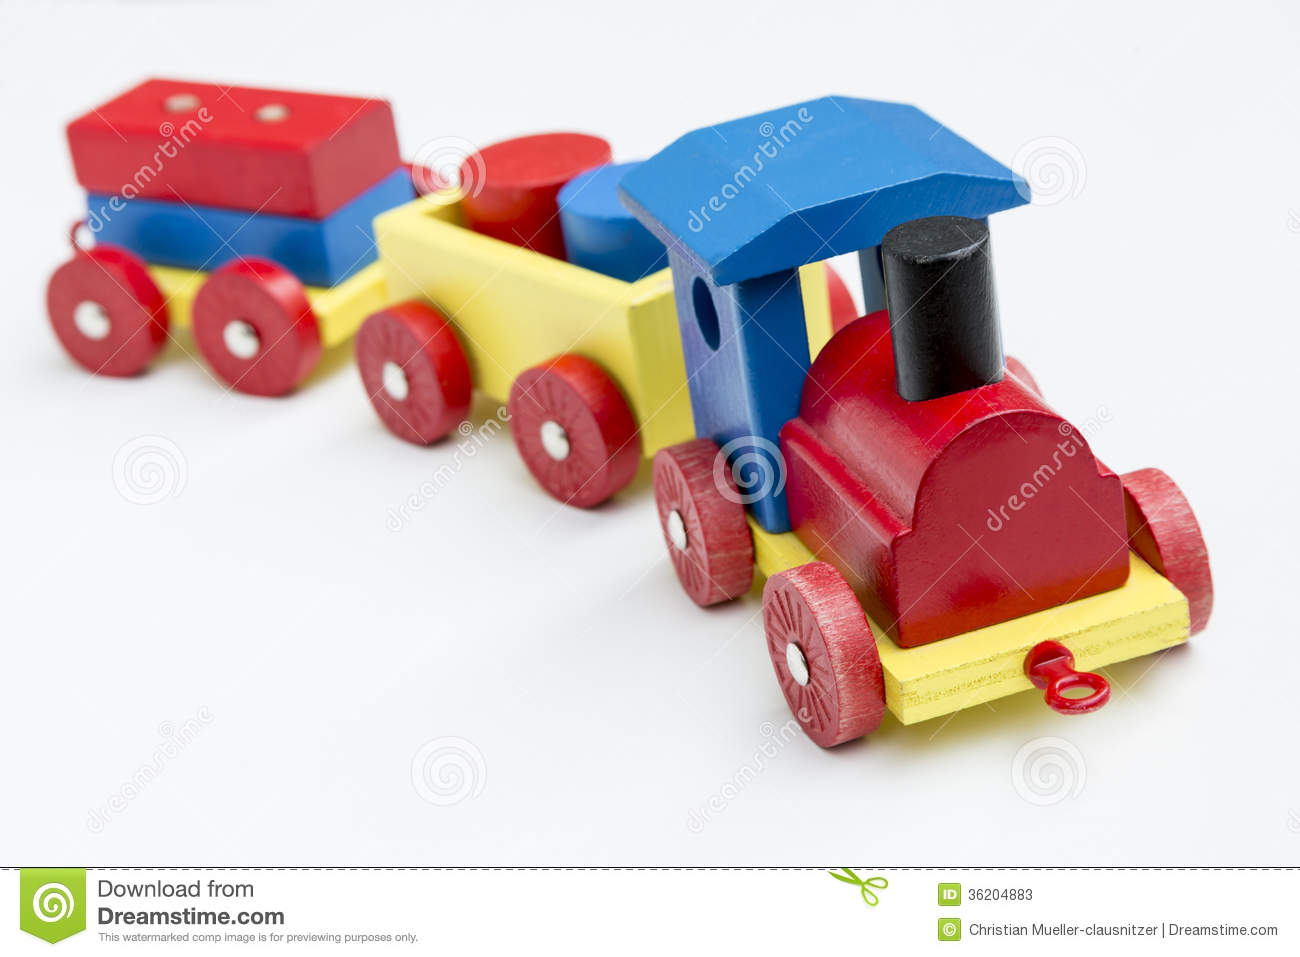 Wooden toy train stock image. Image of creativity, playing ...